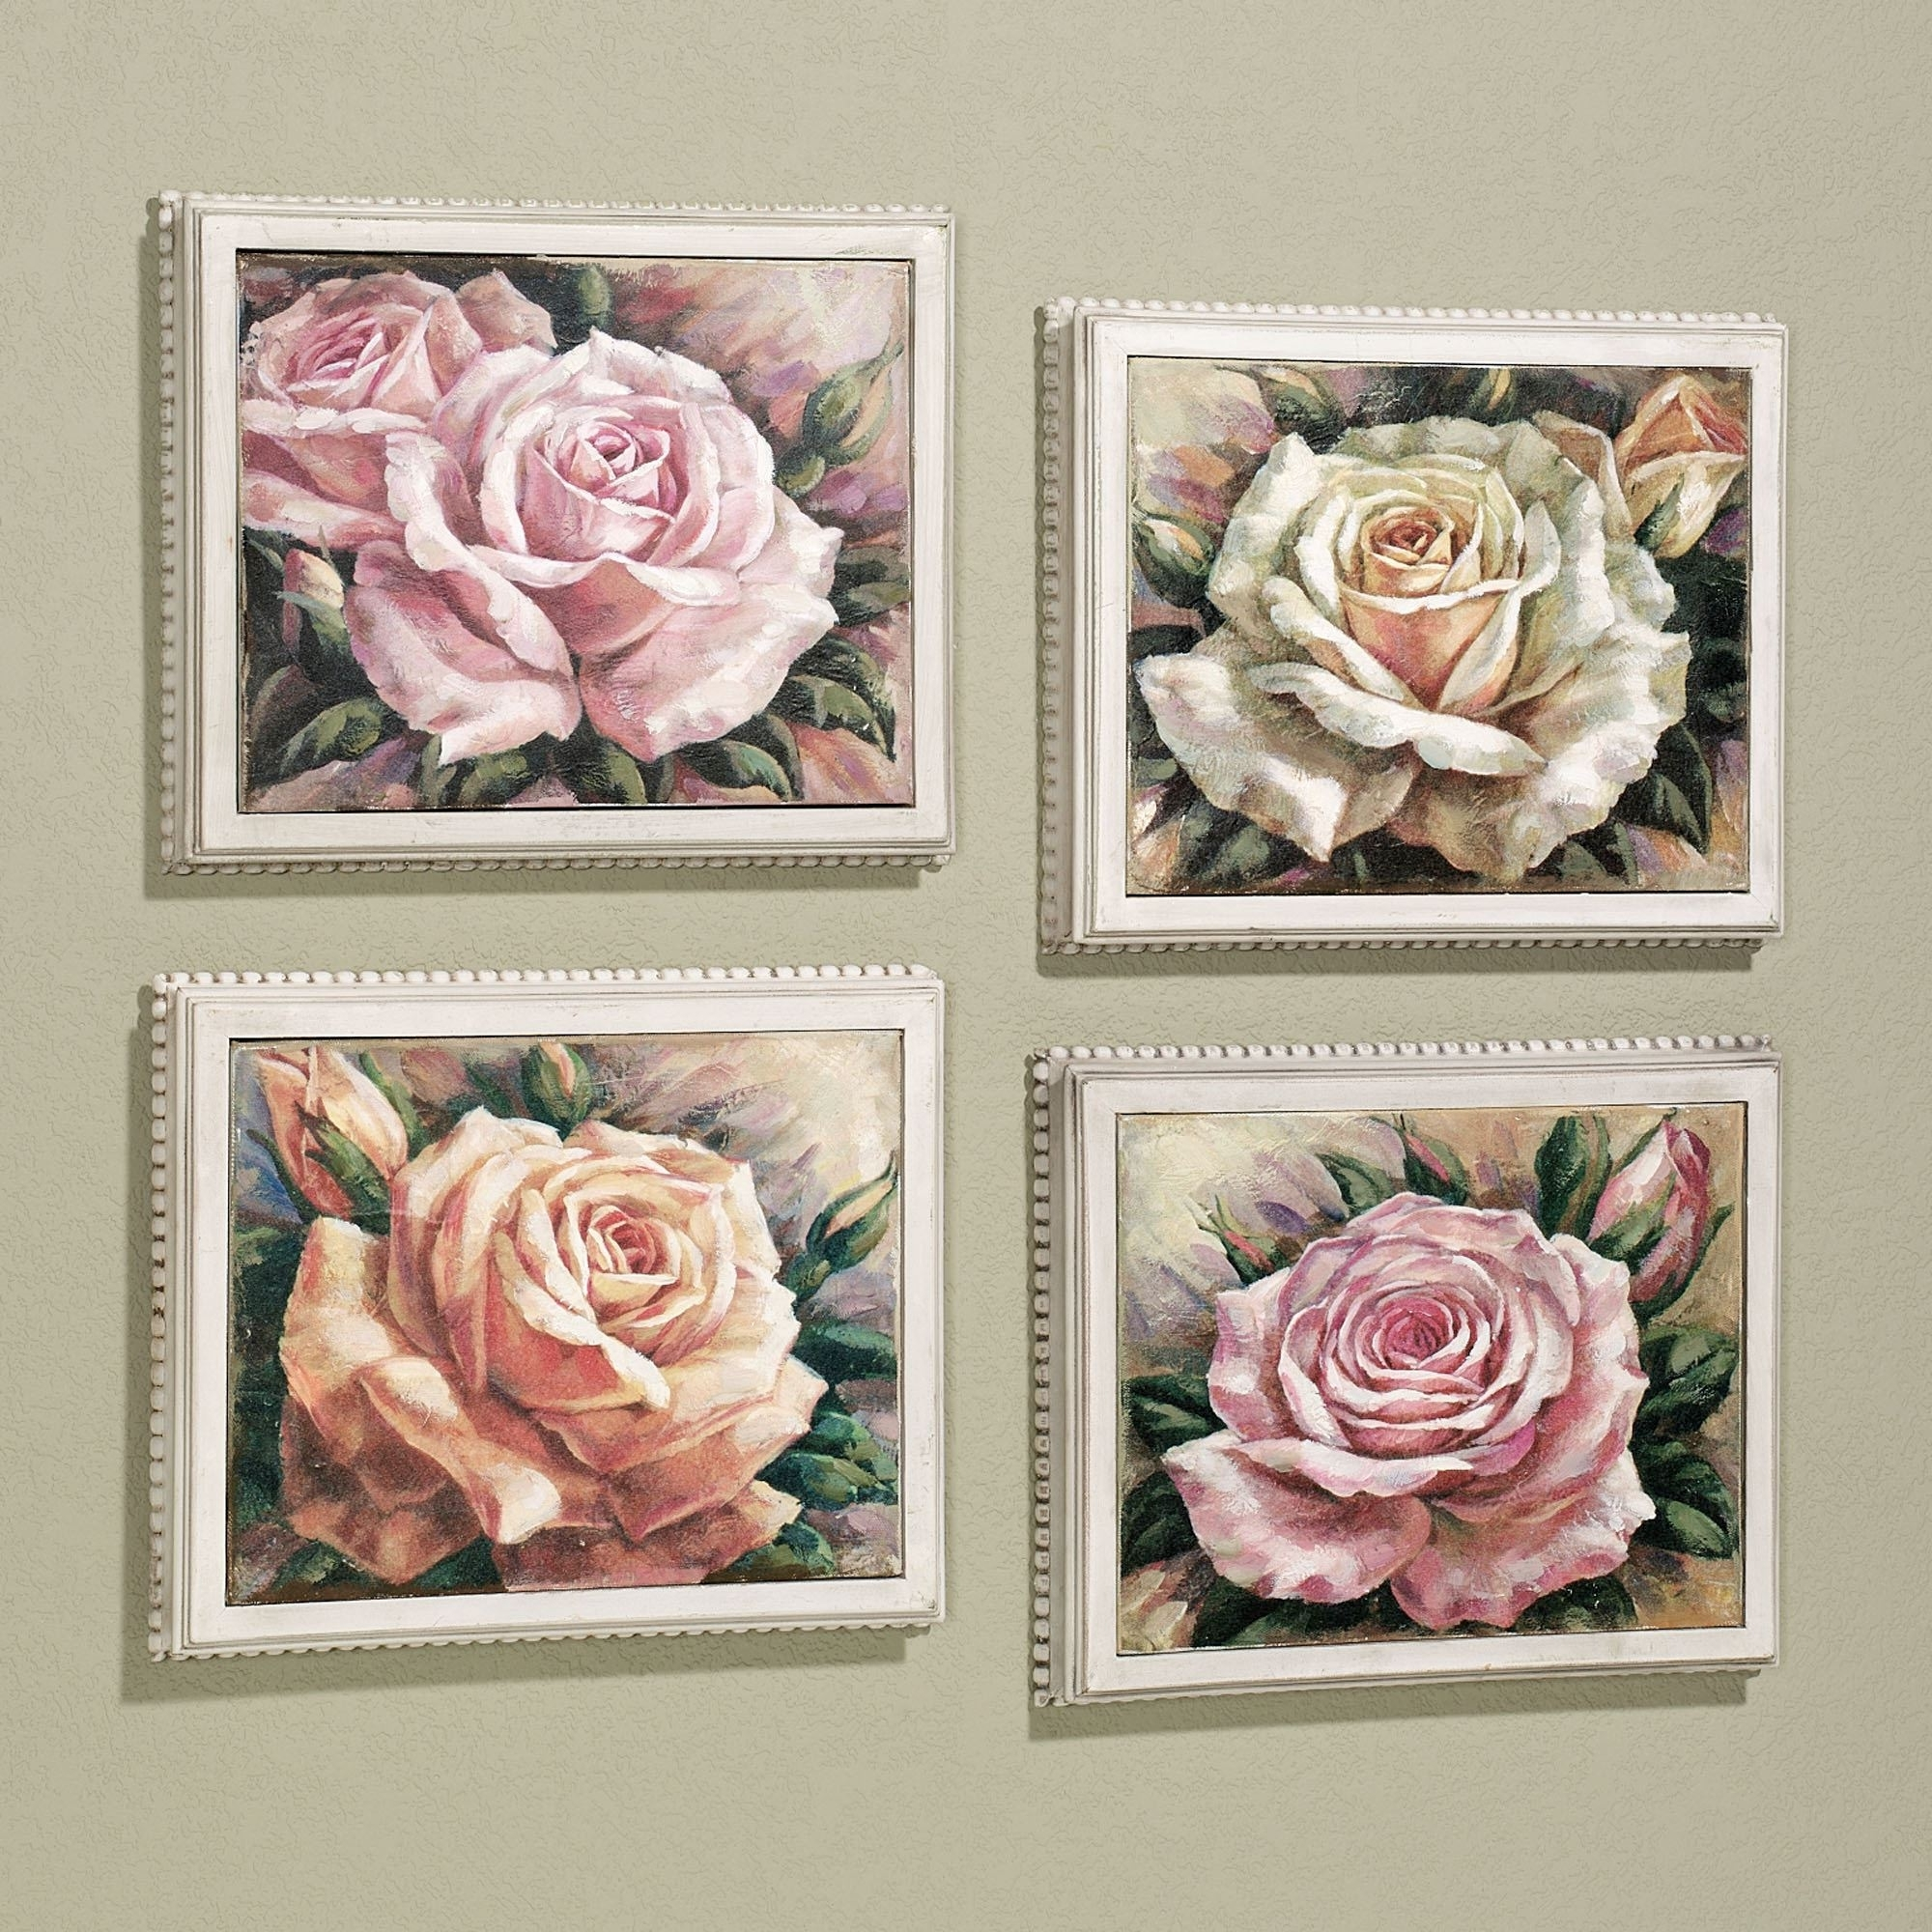 Roses Canvas Wall Art Regarding Most Recently Released Blooming Roses Framed Canvas Wall Art Set (View 13 of 15)